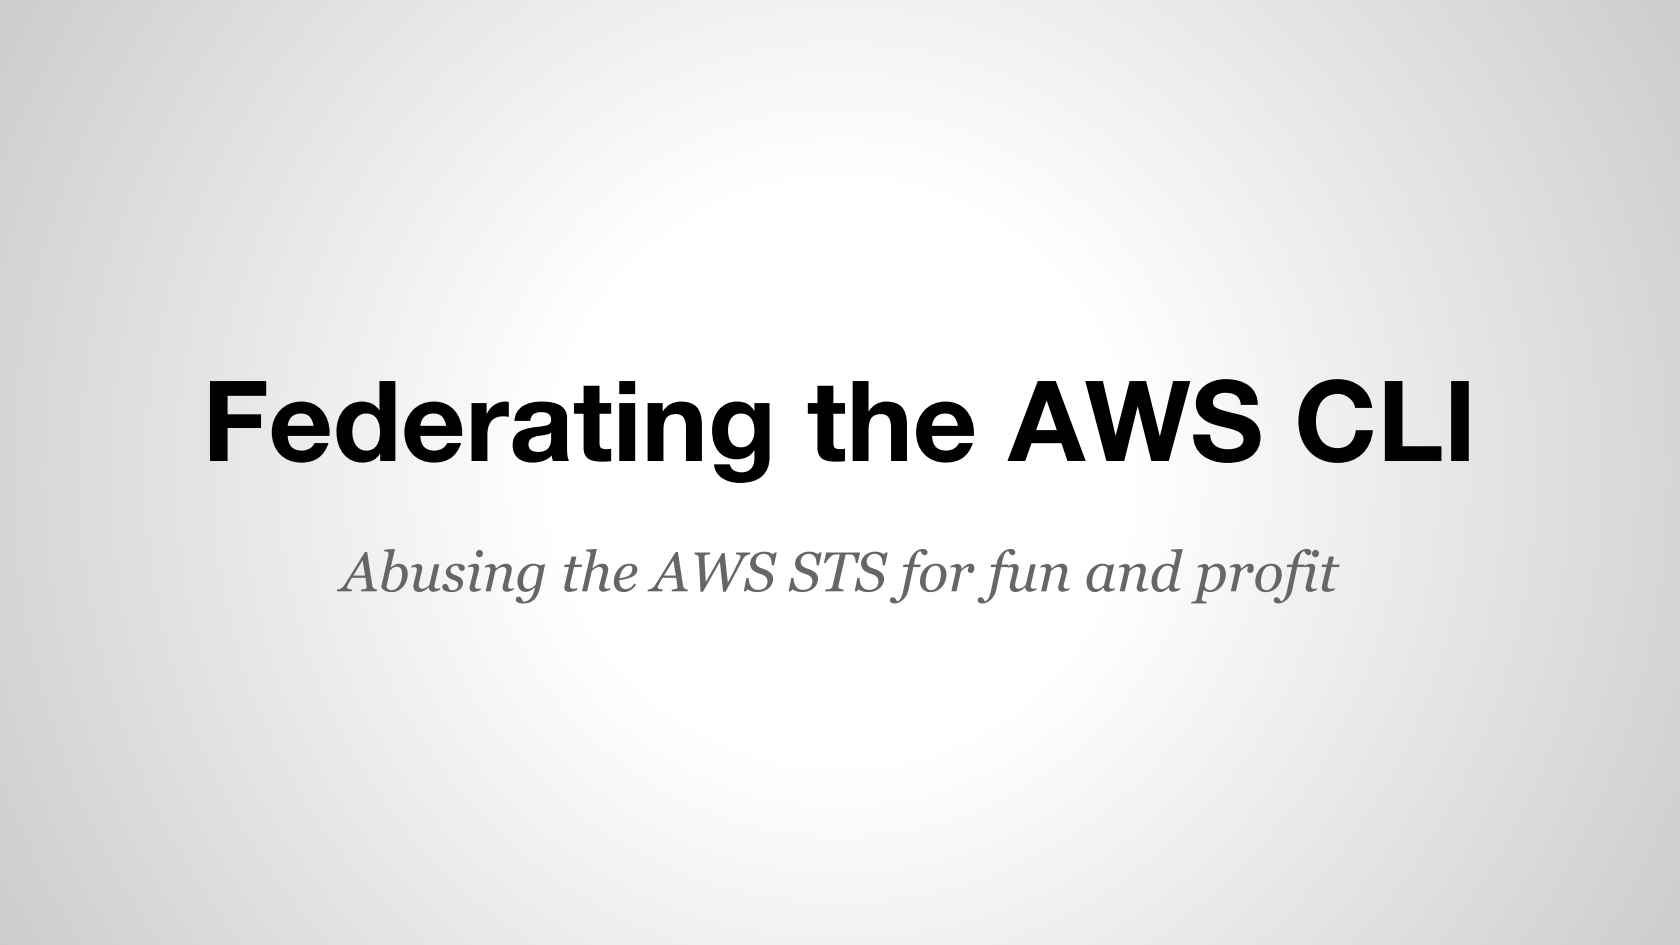 Federating the AWS CLI with an Identity Provider